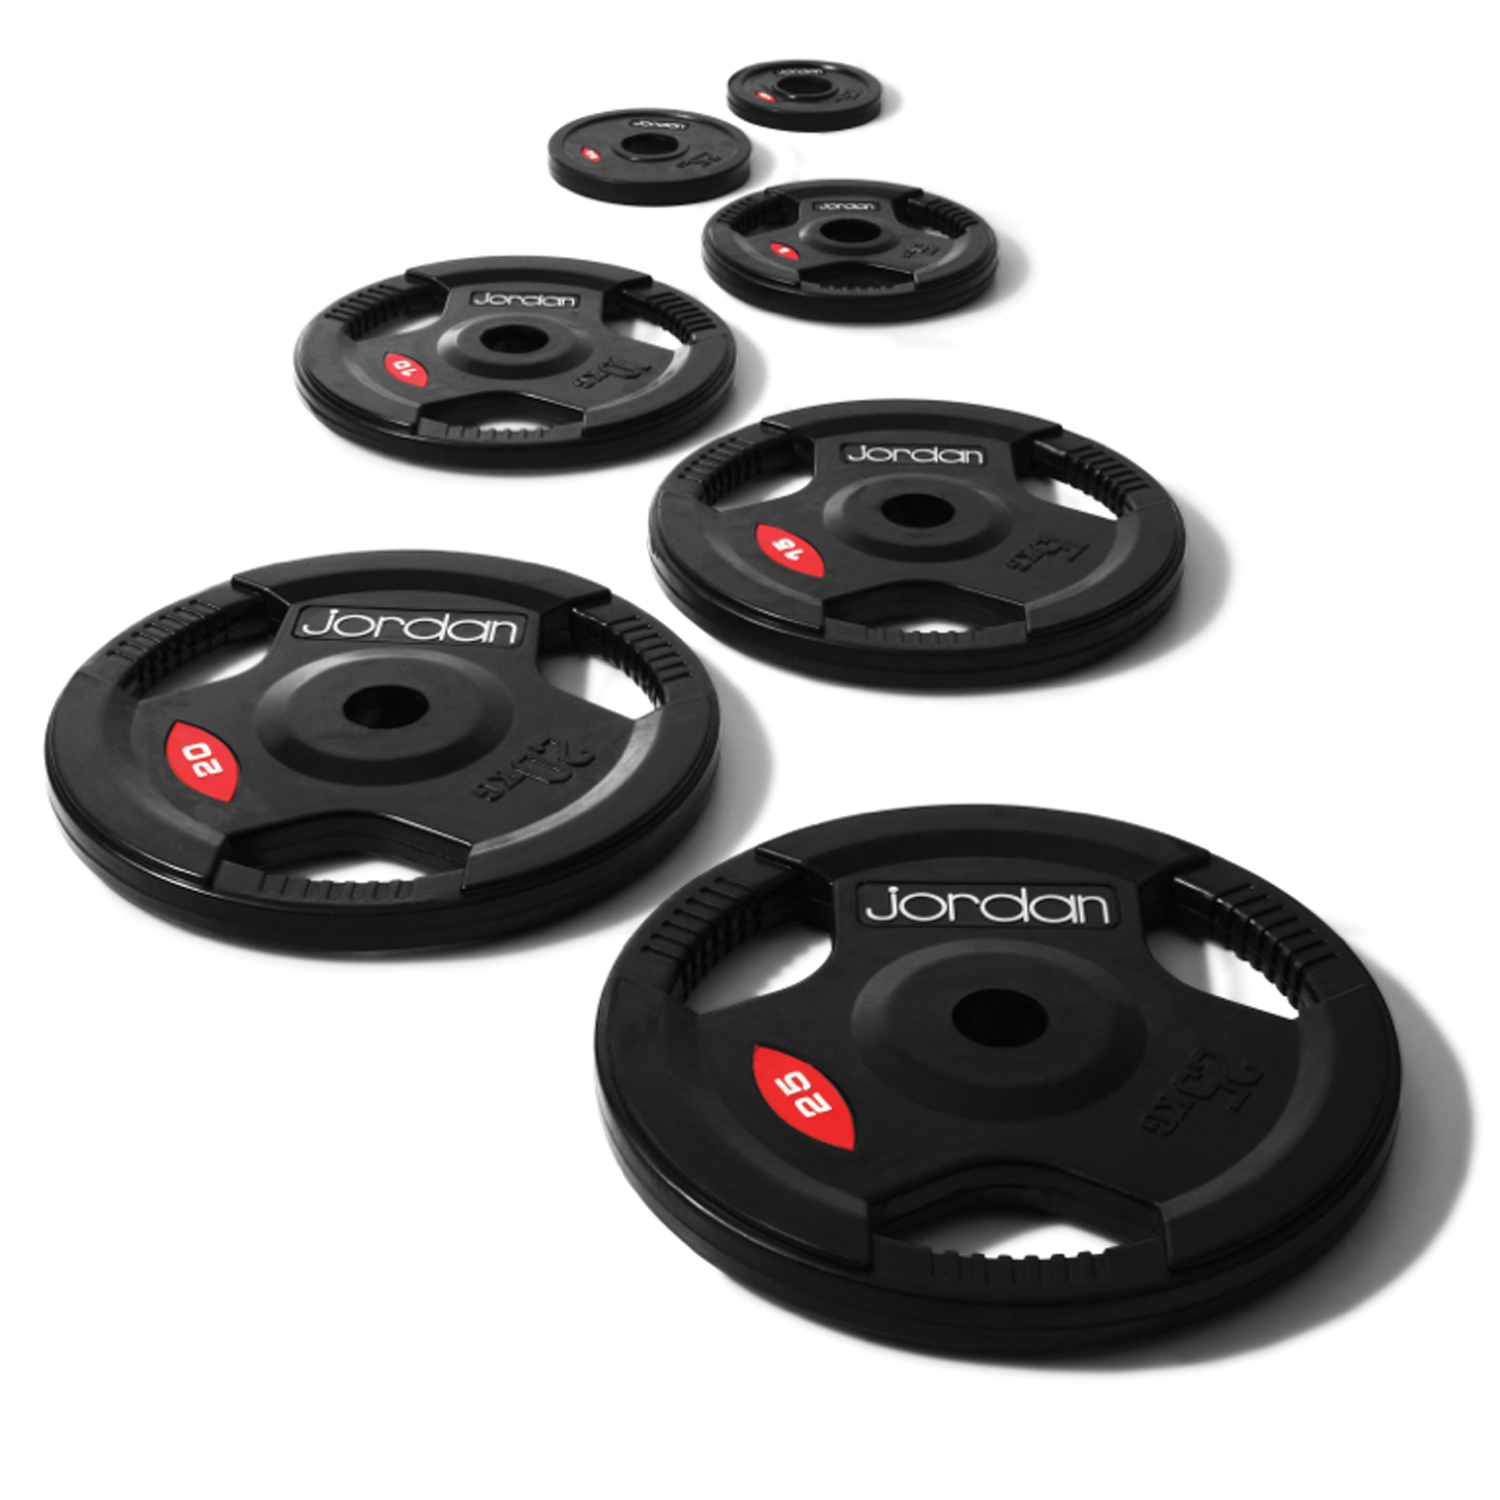 Olympic Round Black Rubber Discs 5kg